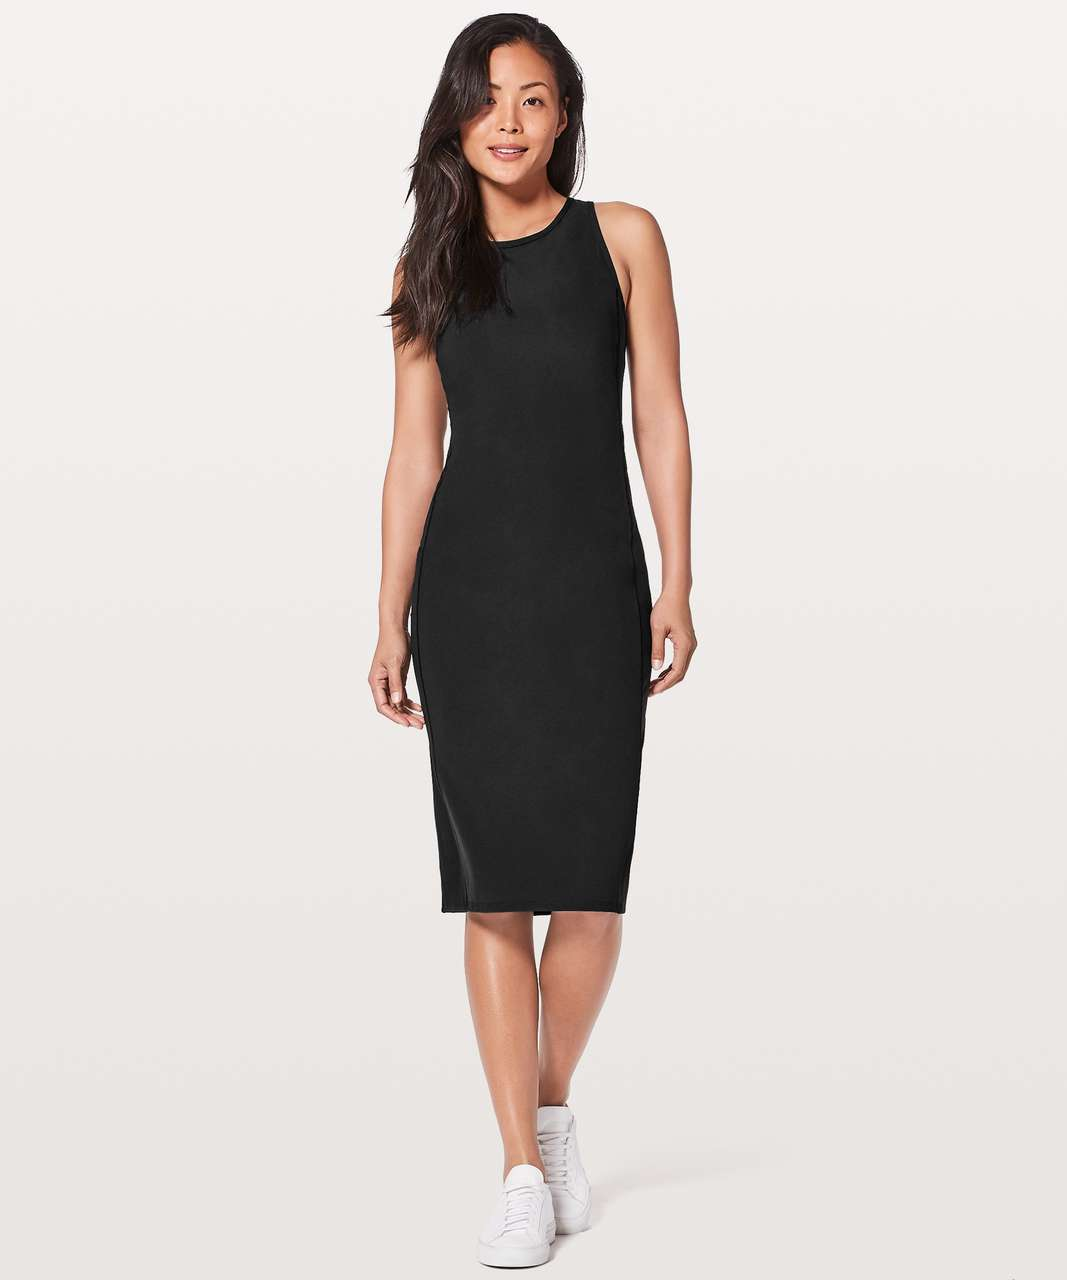 Lululemon Rather Be Gathered Dress - Black - lulu fanatics